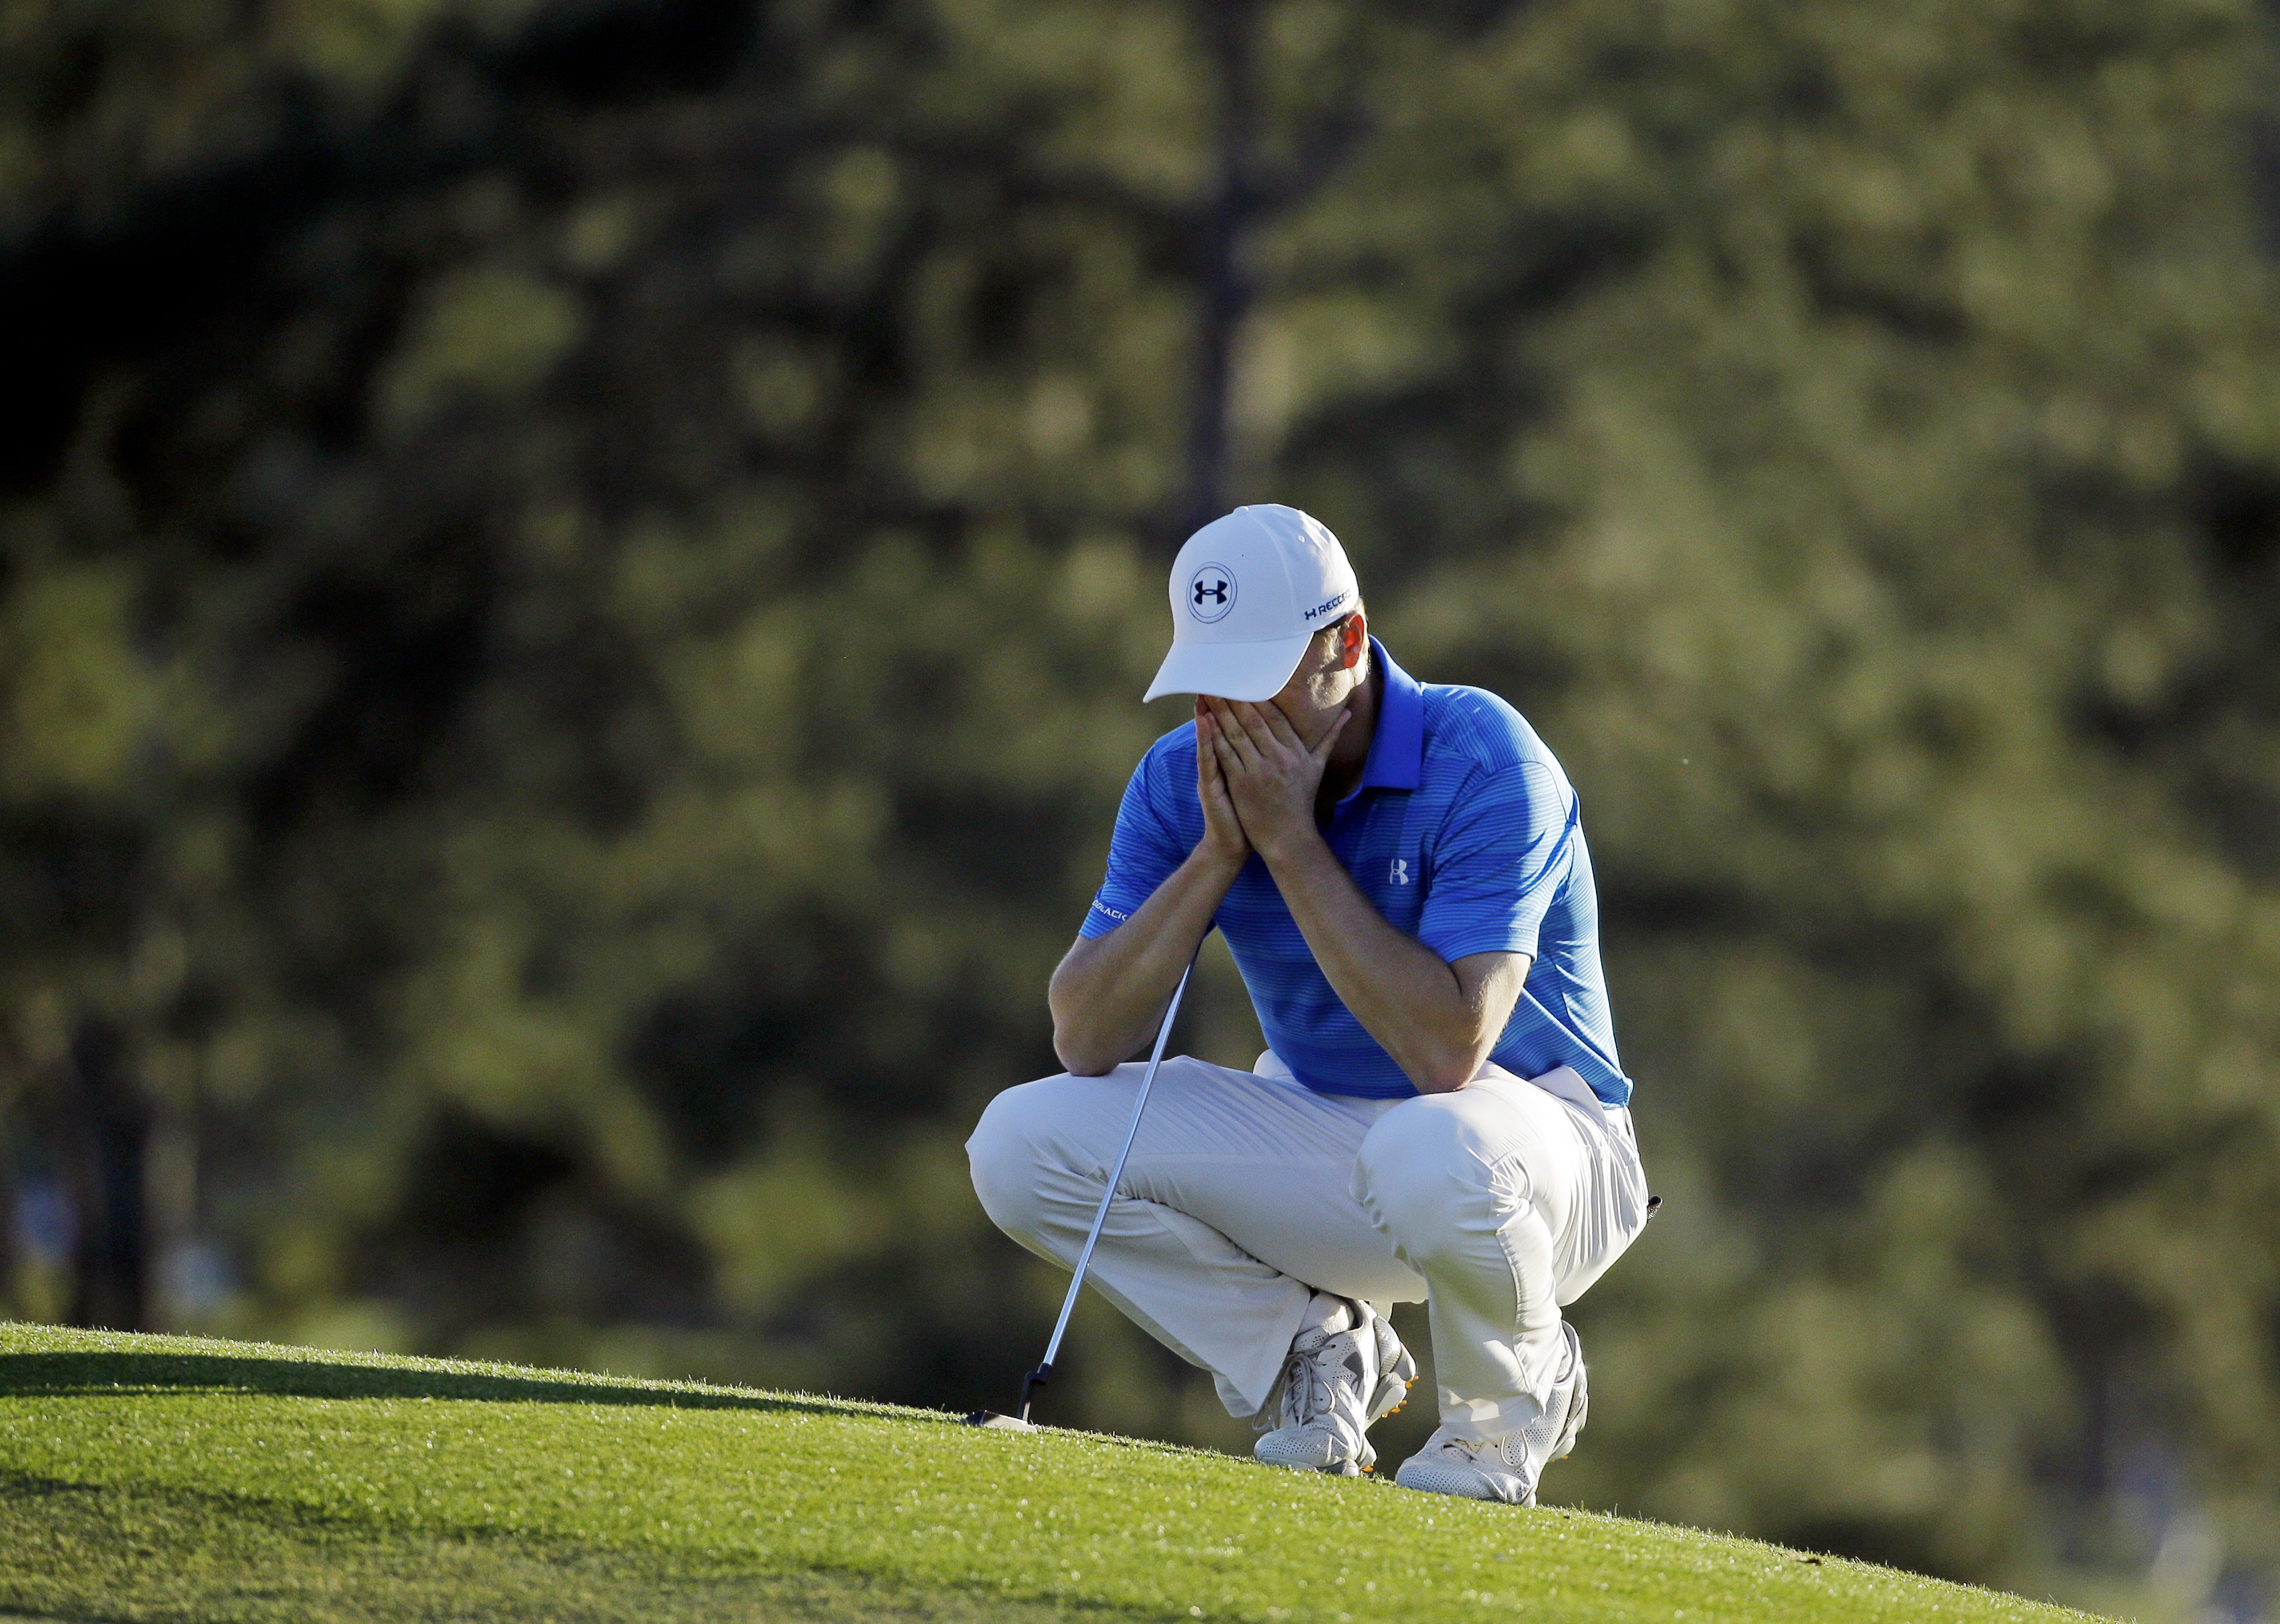 Jordan Spieth pauses on the 18th green before putting out during the final round of the Masters on April 10, 2016, in Augusta, Georgia.